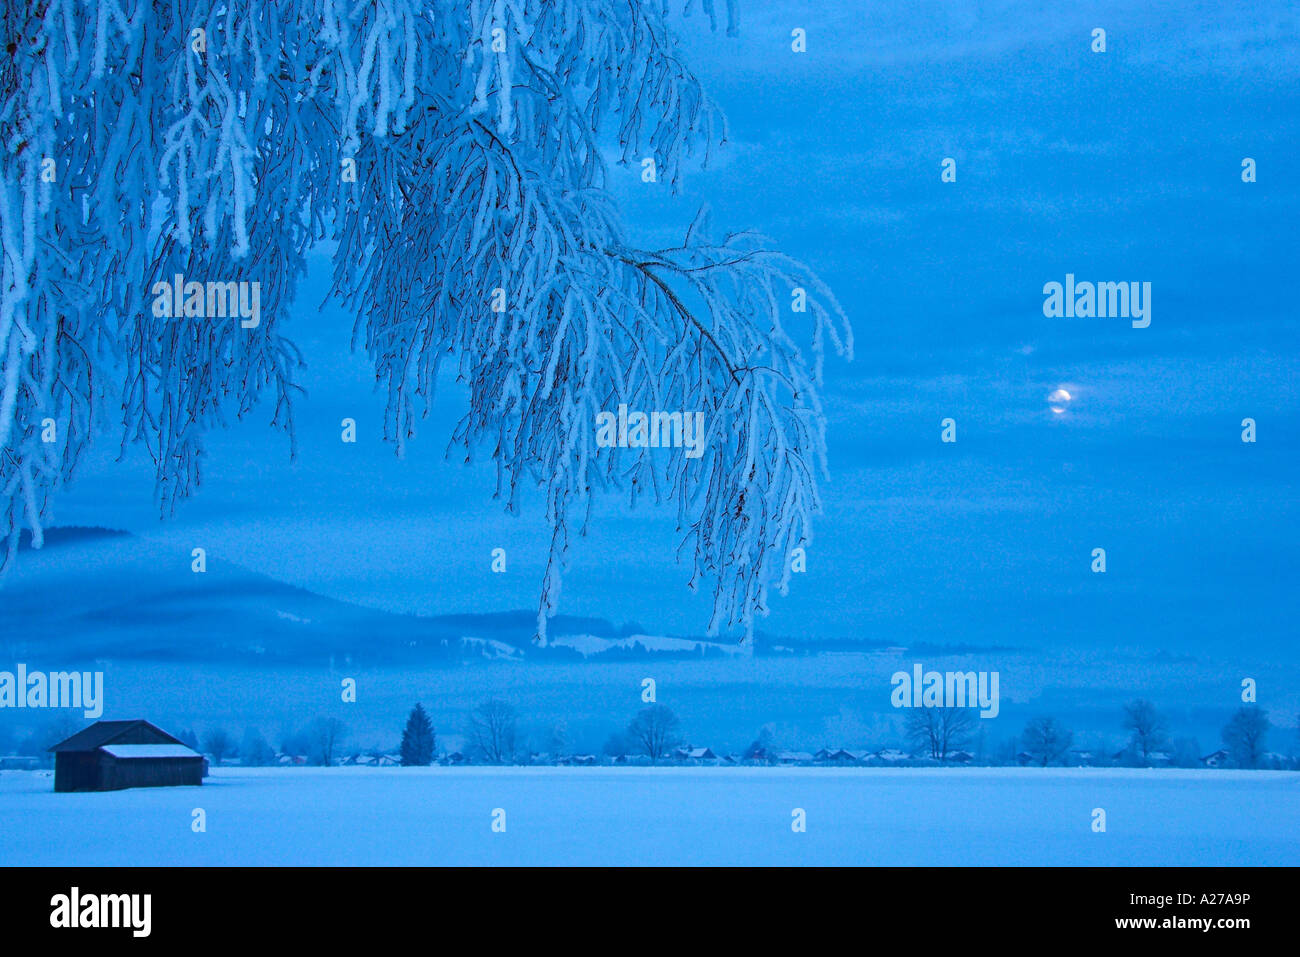 Frosty and foggy at moonshine in the bavarian mountains (alps). Hoarfrost in the trees. Kochelsee Upper Bavaria - Stock Image